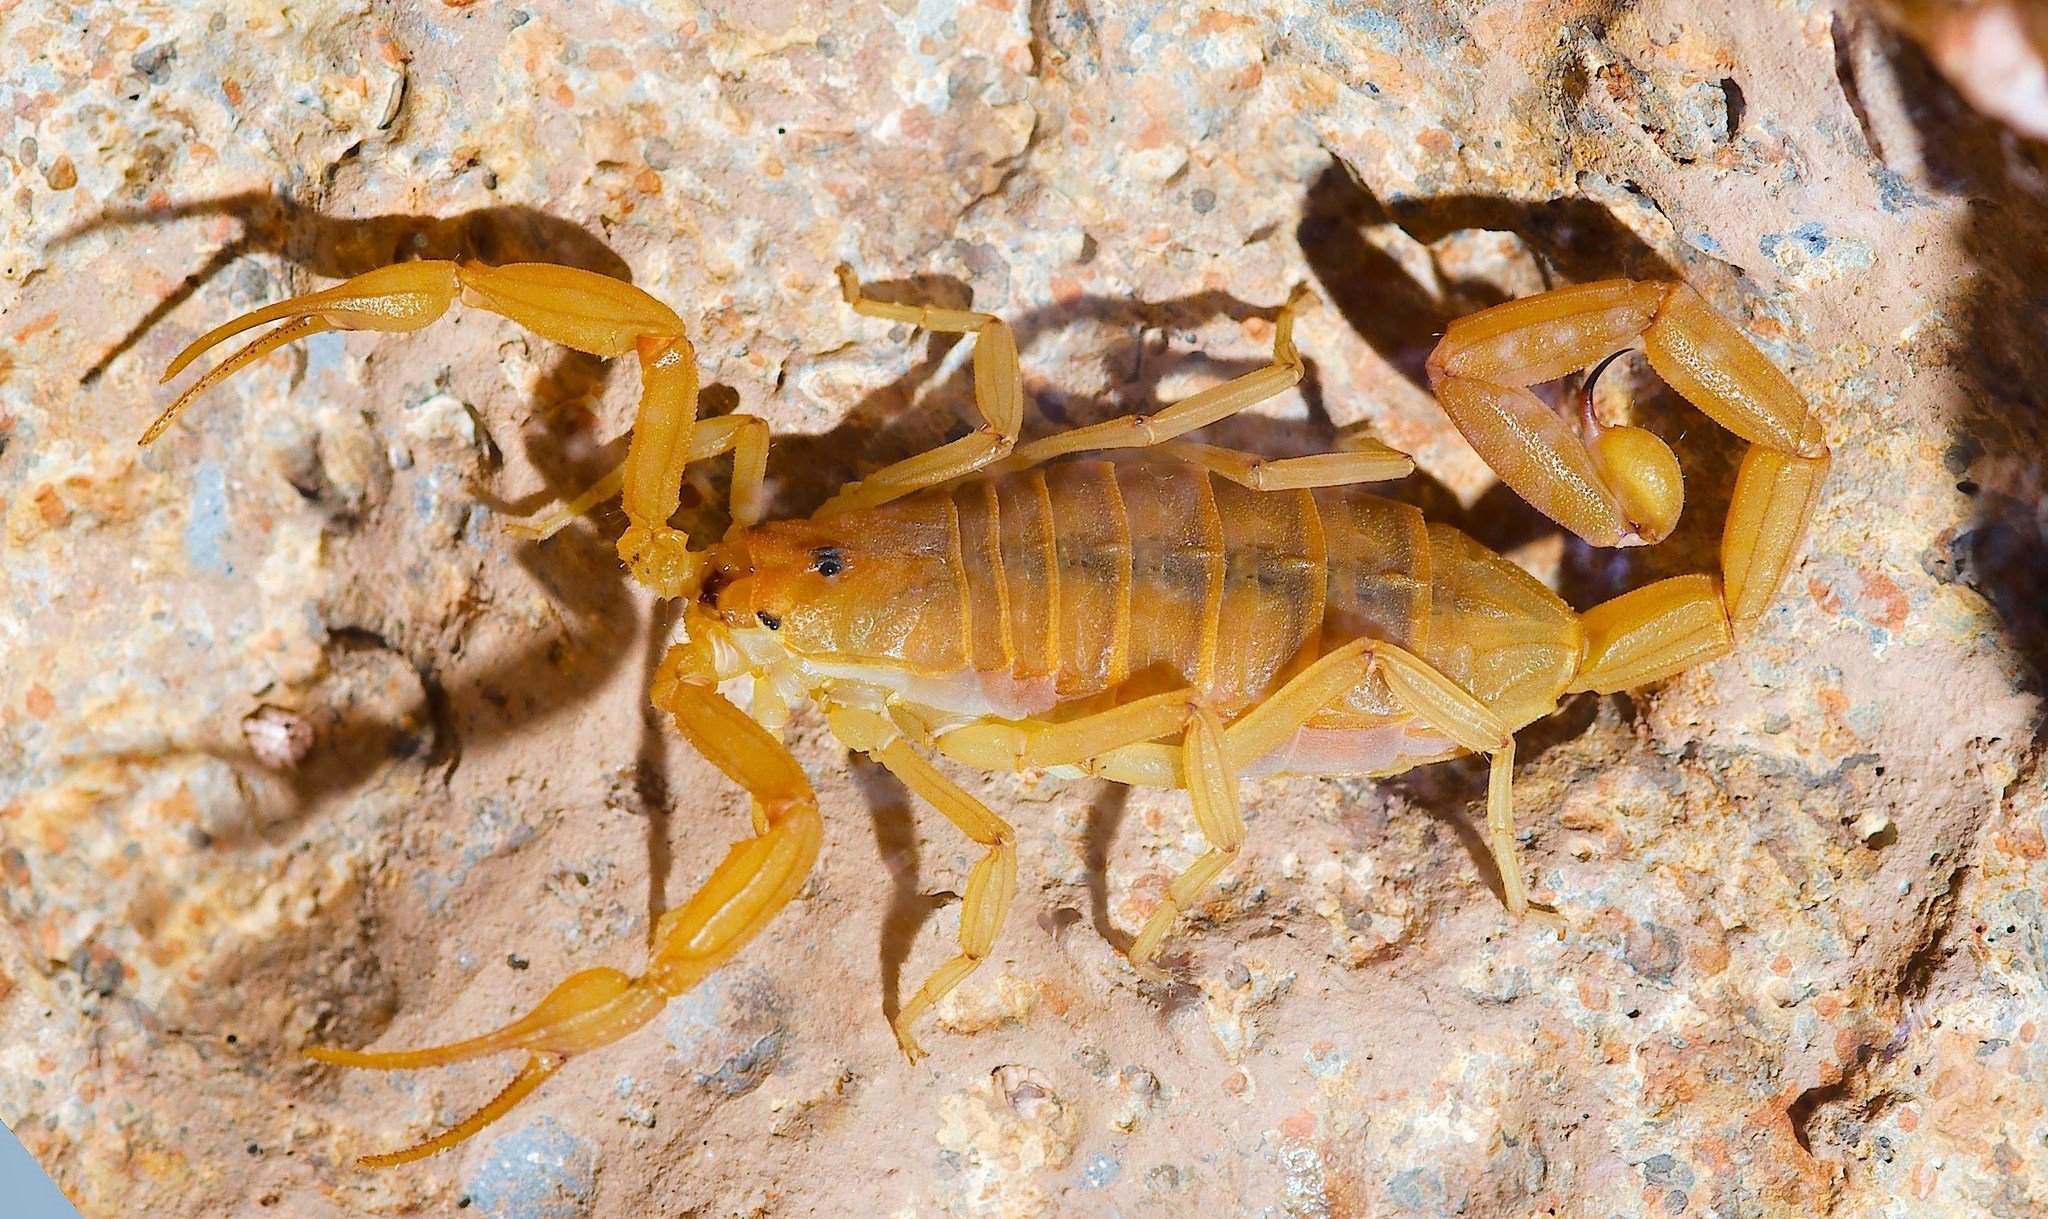 How Long Can Bark Scorpions Live Without Food